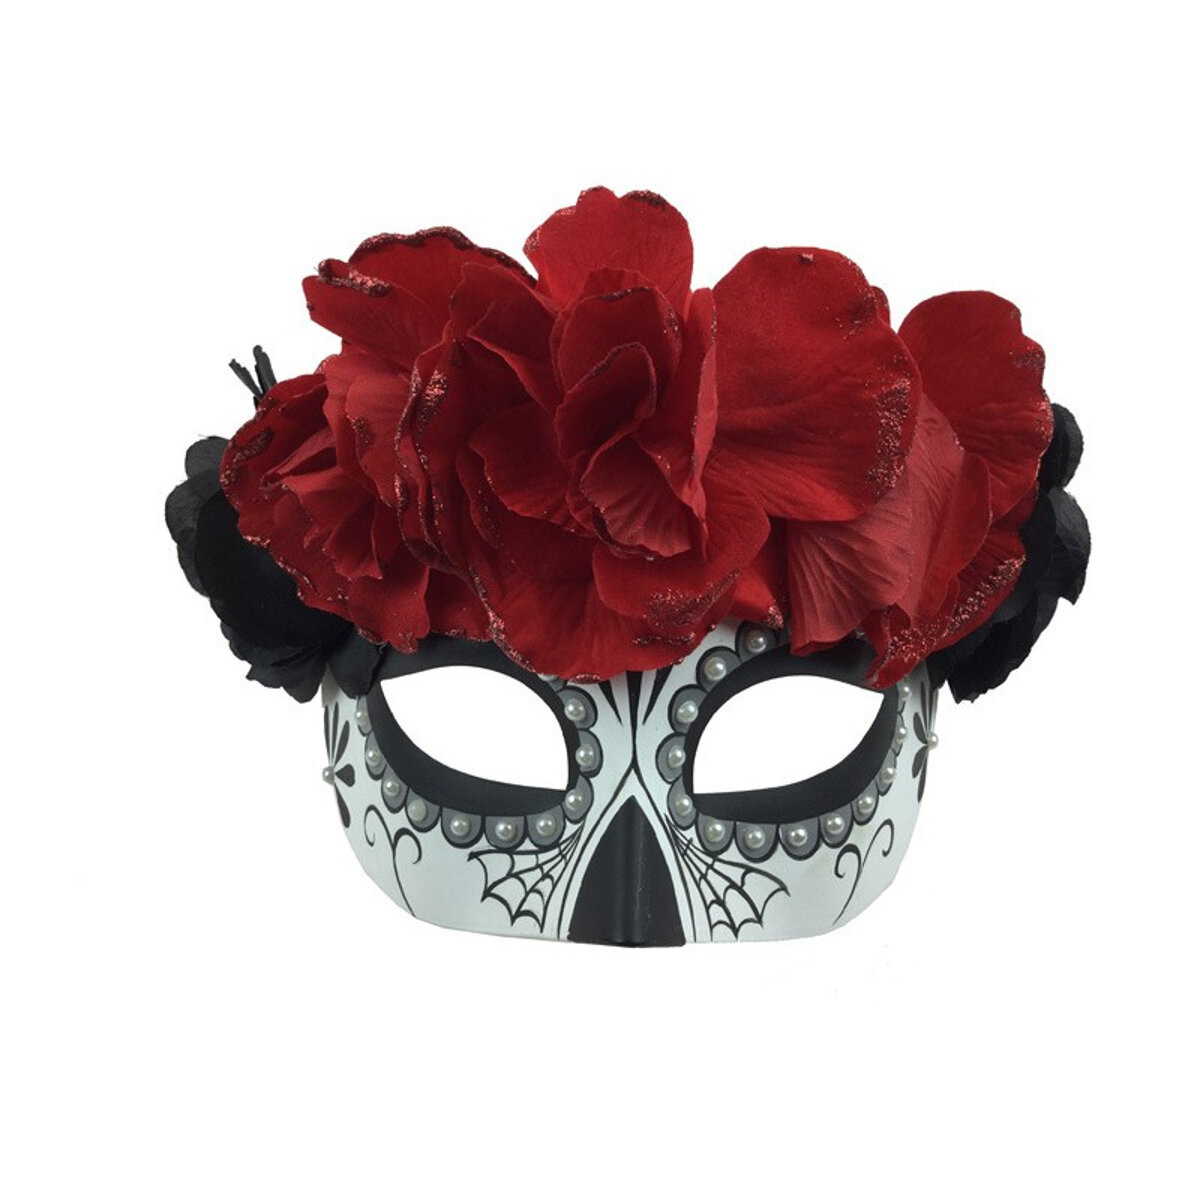 Sugar-Skull-Mask-With-Flowers-Main-Image